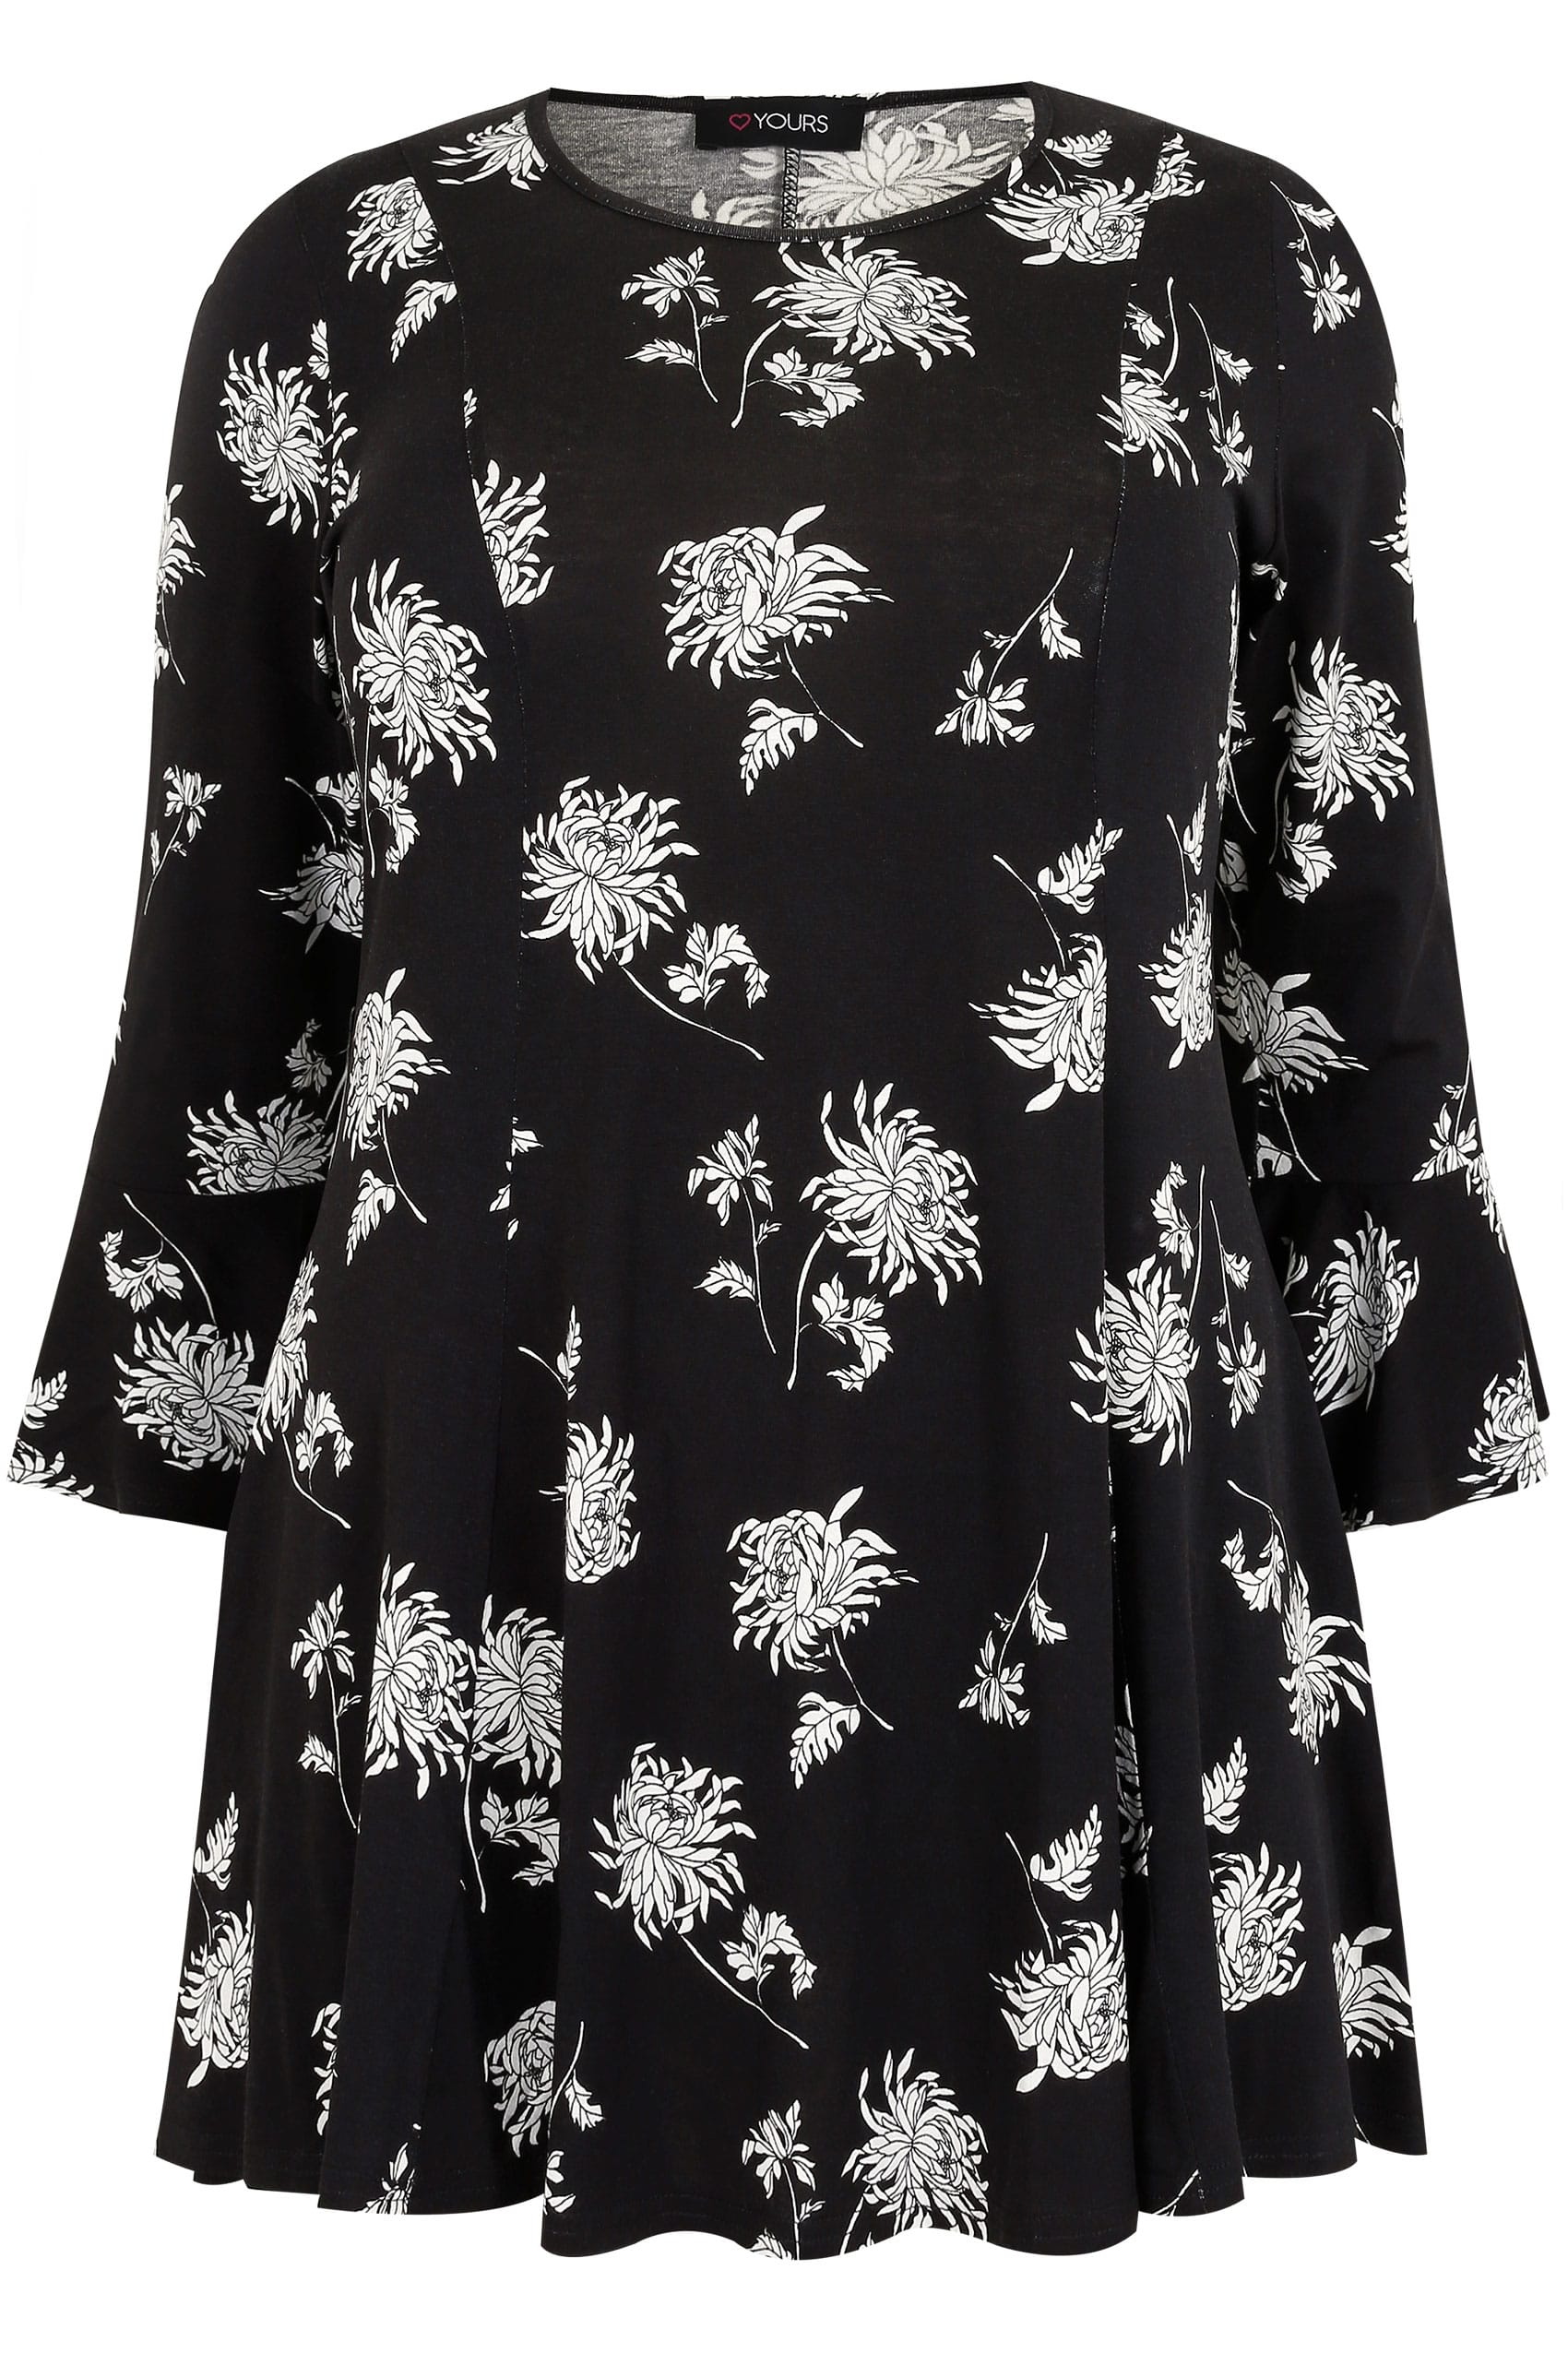 7b44c7491531f4 Hover over the images above to enlarge. Black & White Floral Print Longline  Peplum Top With Flute Sleeves